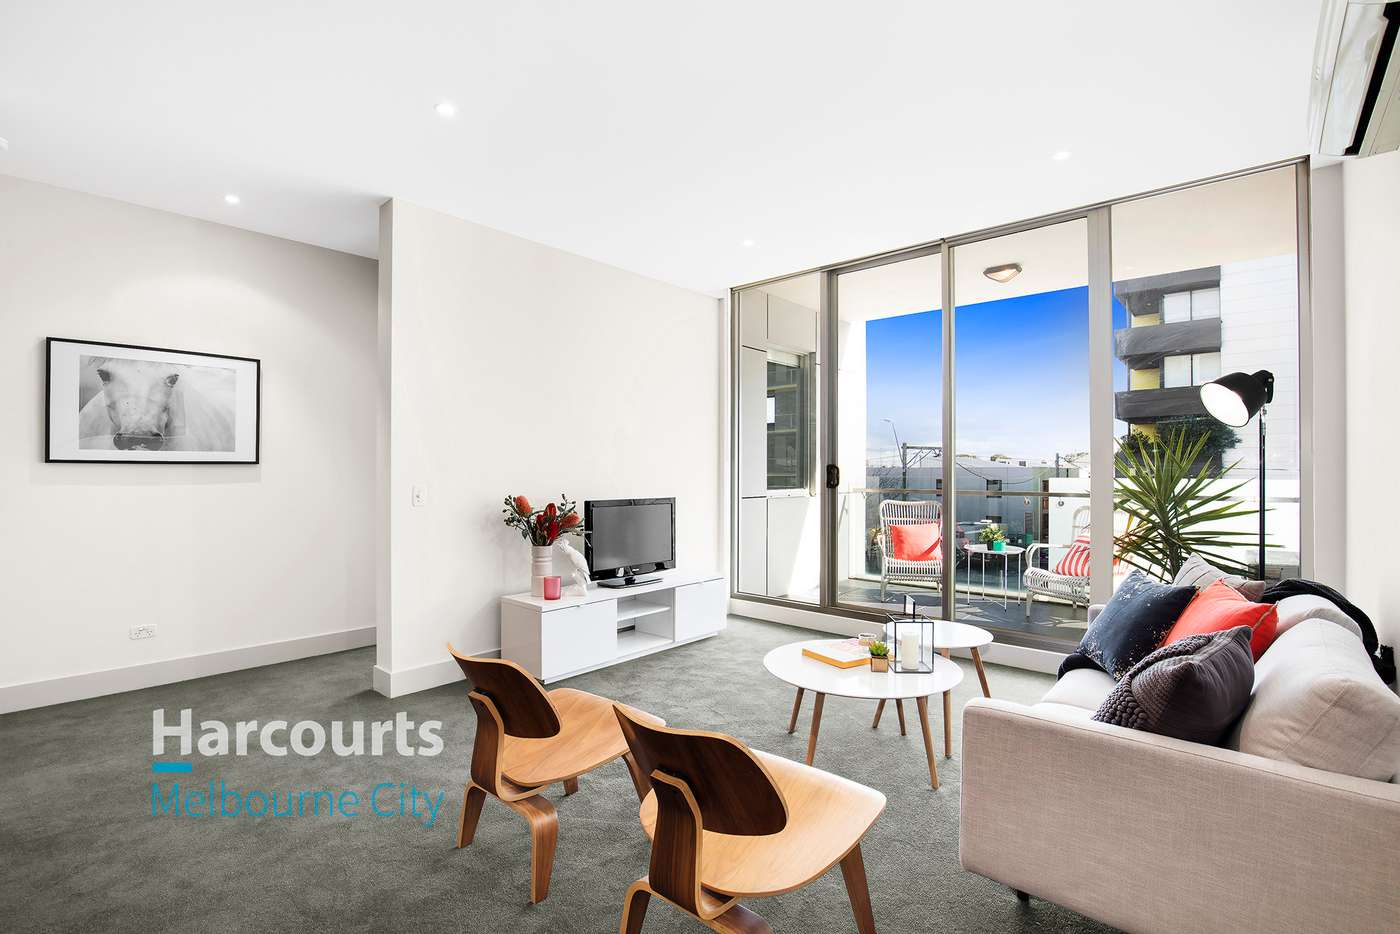 Main view of Homely apartment listing, 102/30 Wreckyn Street, North Melbourne VIC 3051